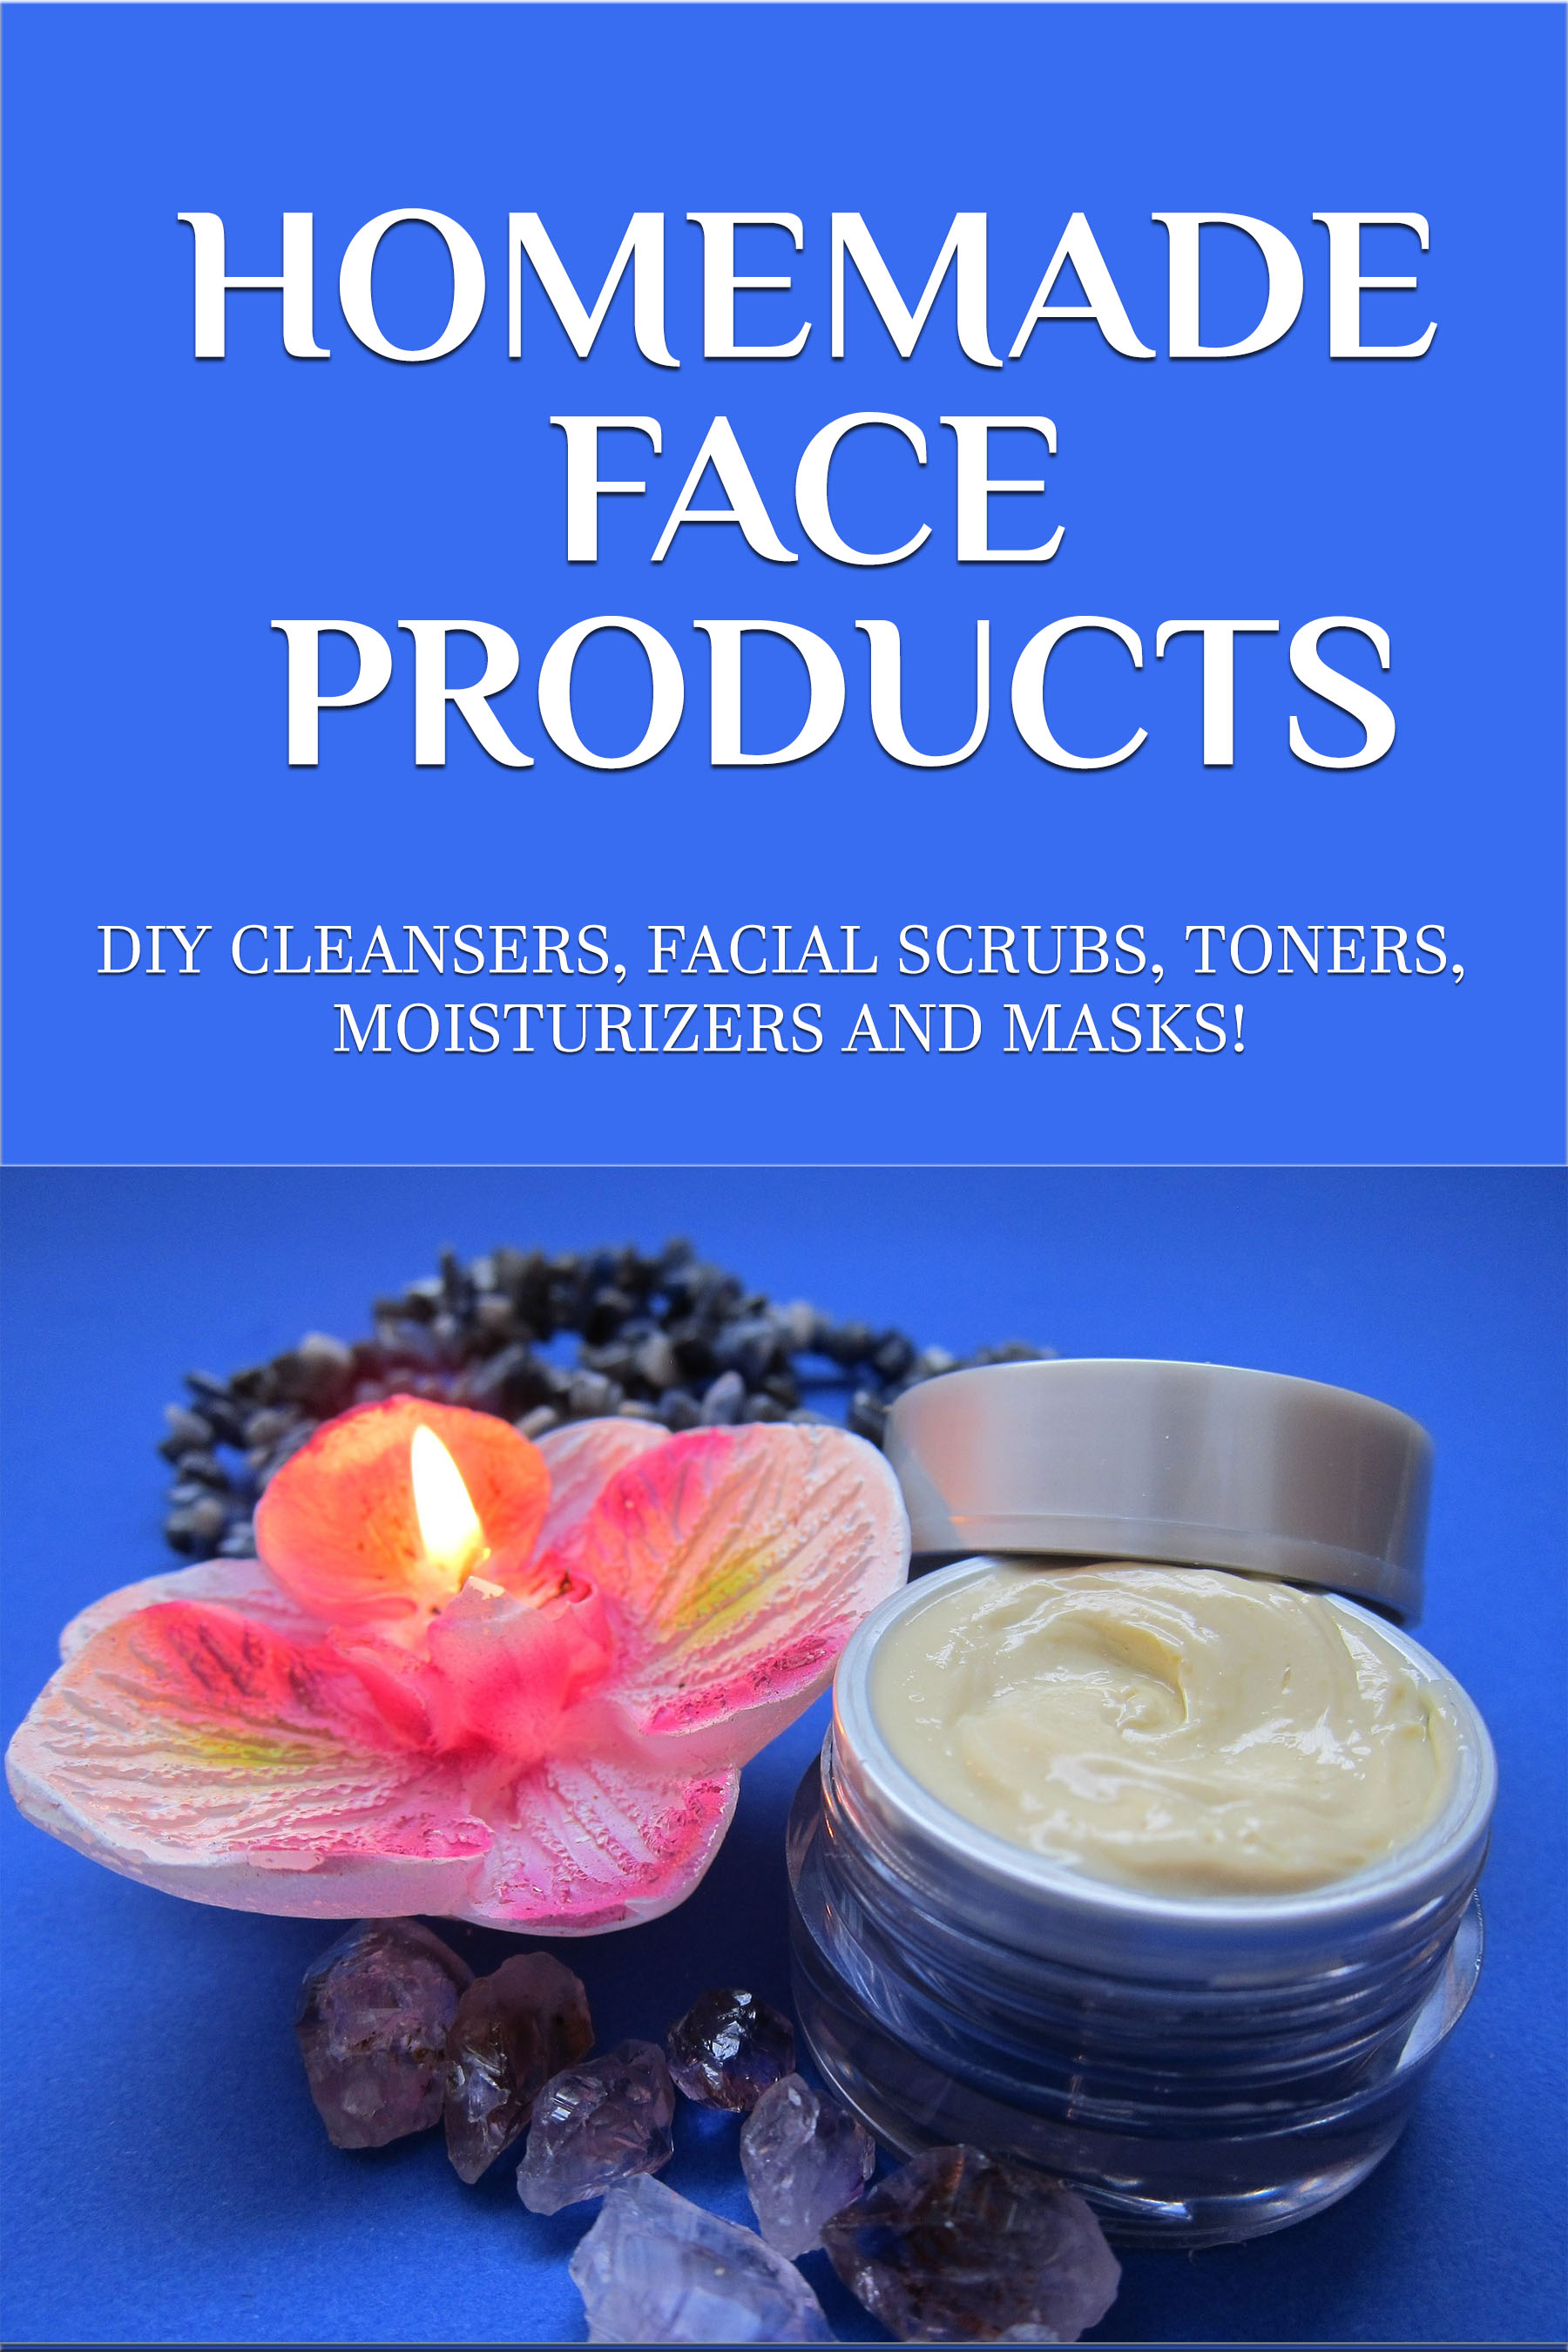 Get Your Free Homemade Face Products Ebook Today!